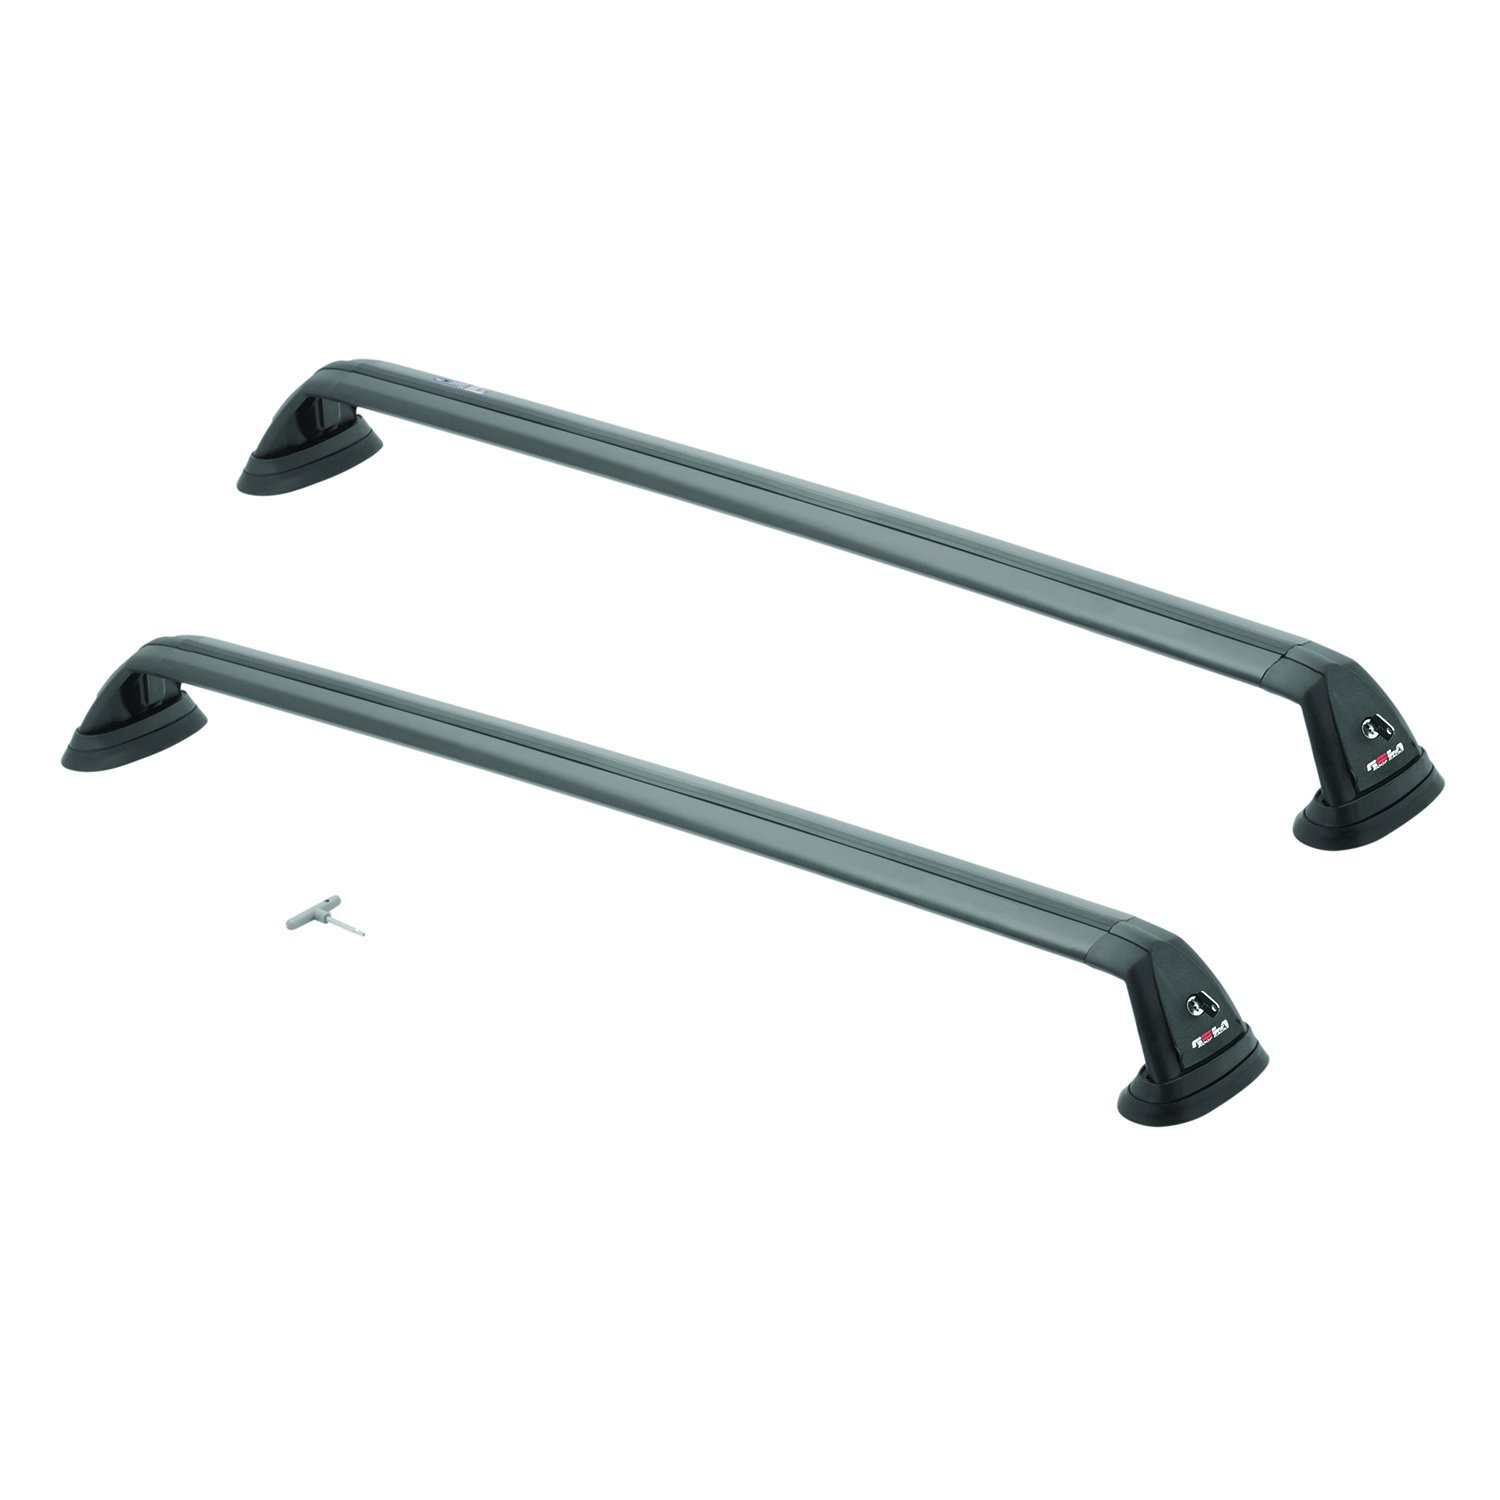 ROLA 59721 Removable Anchor Point Xtreme APX Series Roof Rack for Pontiac Vibe, Toyota Matrix